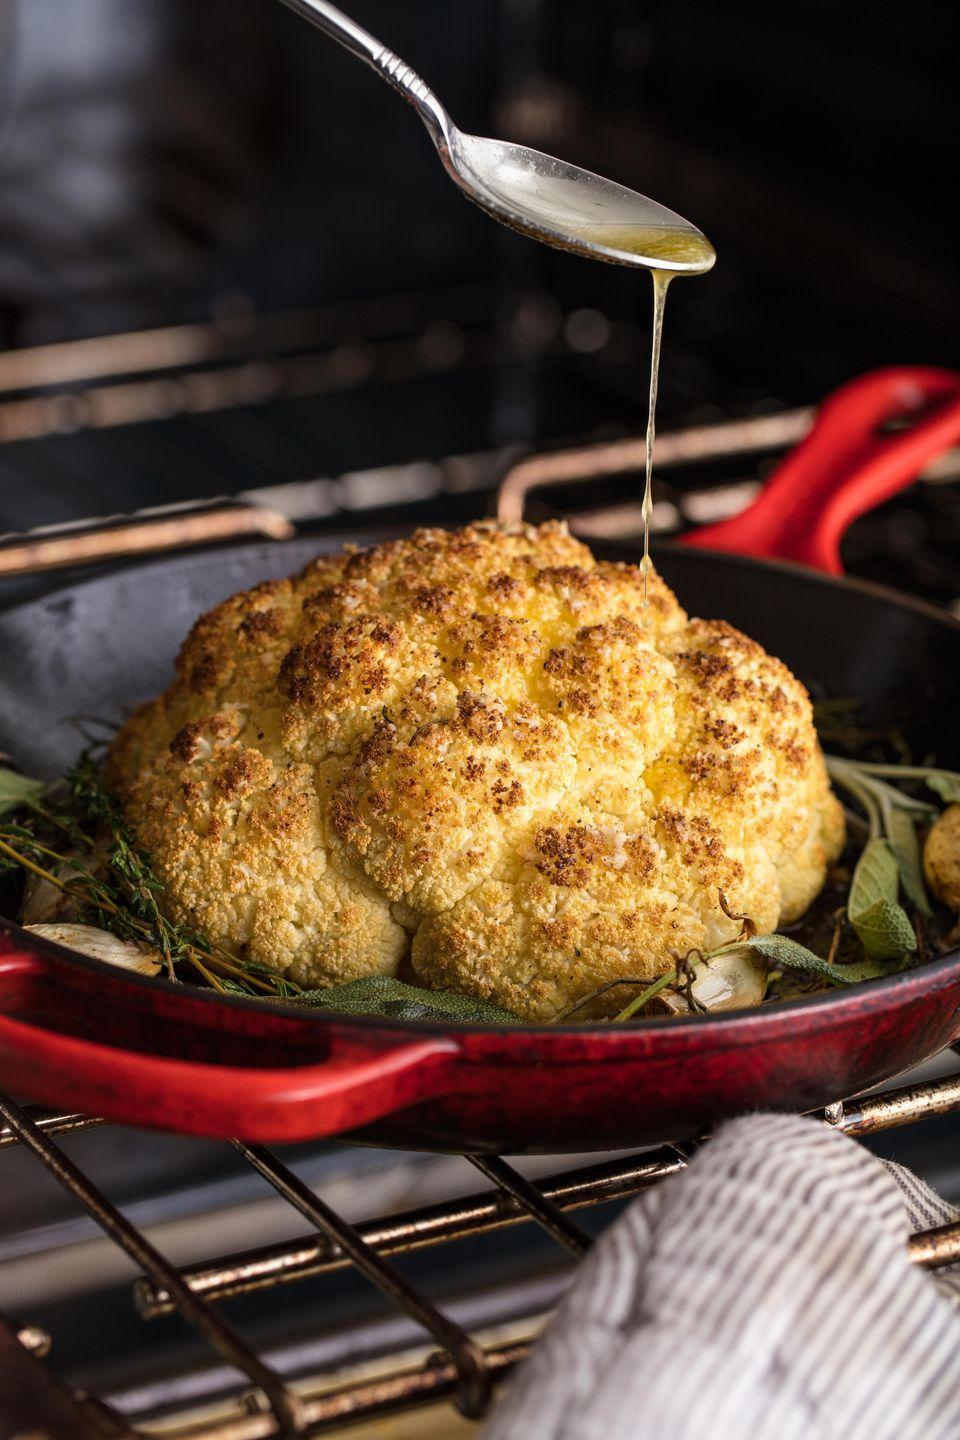 "<p>If there's gravy involved, no ones gonna miss the potatoes.</p><p>Get the recipe from <a href=""https://www.delish.com/cooking/recipe-ideas/recipes/a50157/thanksgiving-cauliflower-recipe/"" rel=""nofollow noopener"" target=""_blank"" data-ylk=""slk:Delish"" class=""link rapid-noclick-resp"">Delish</a>.</p>"